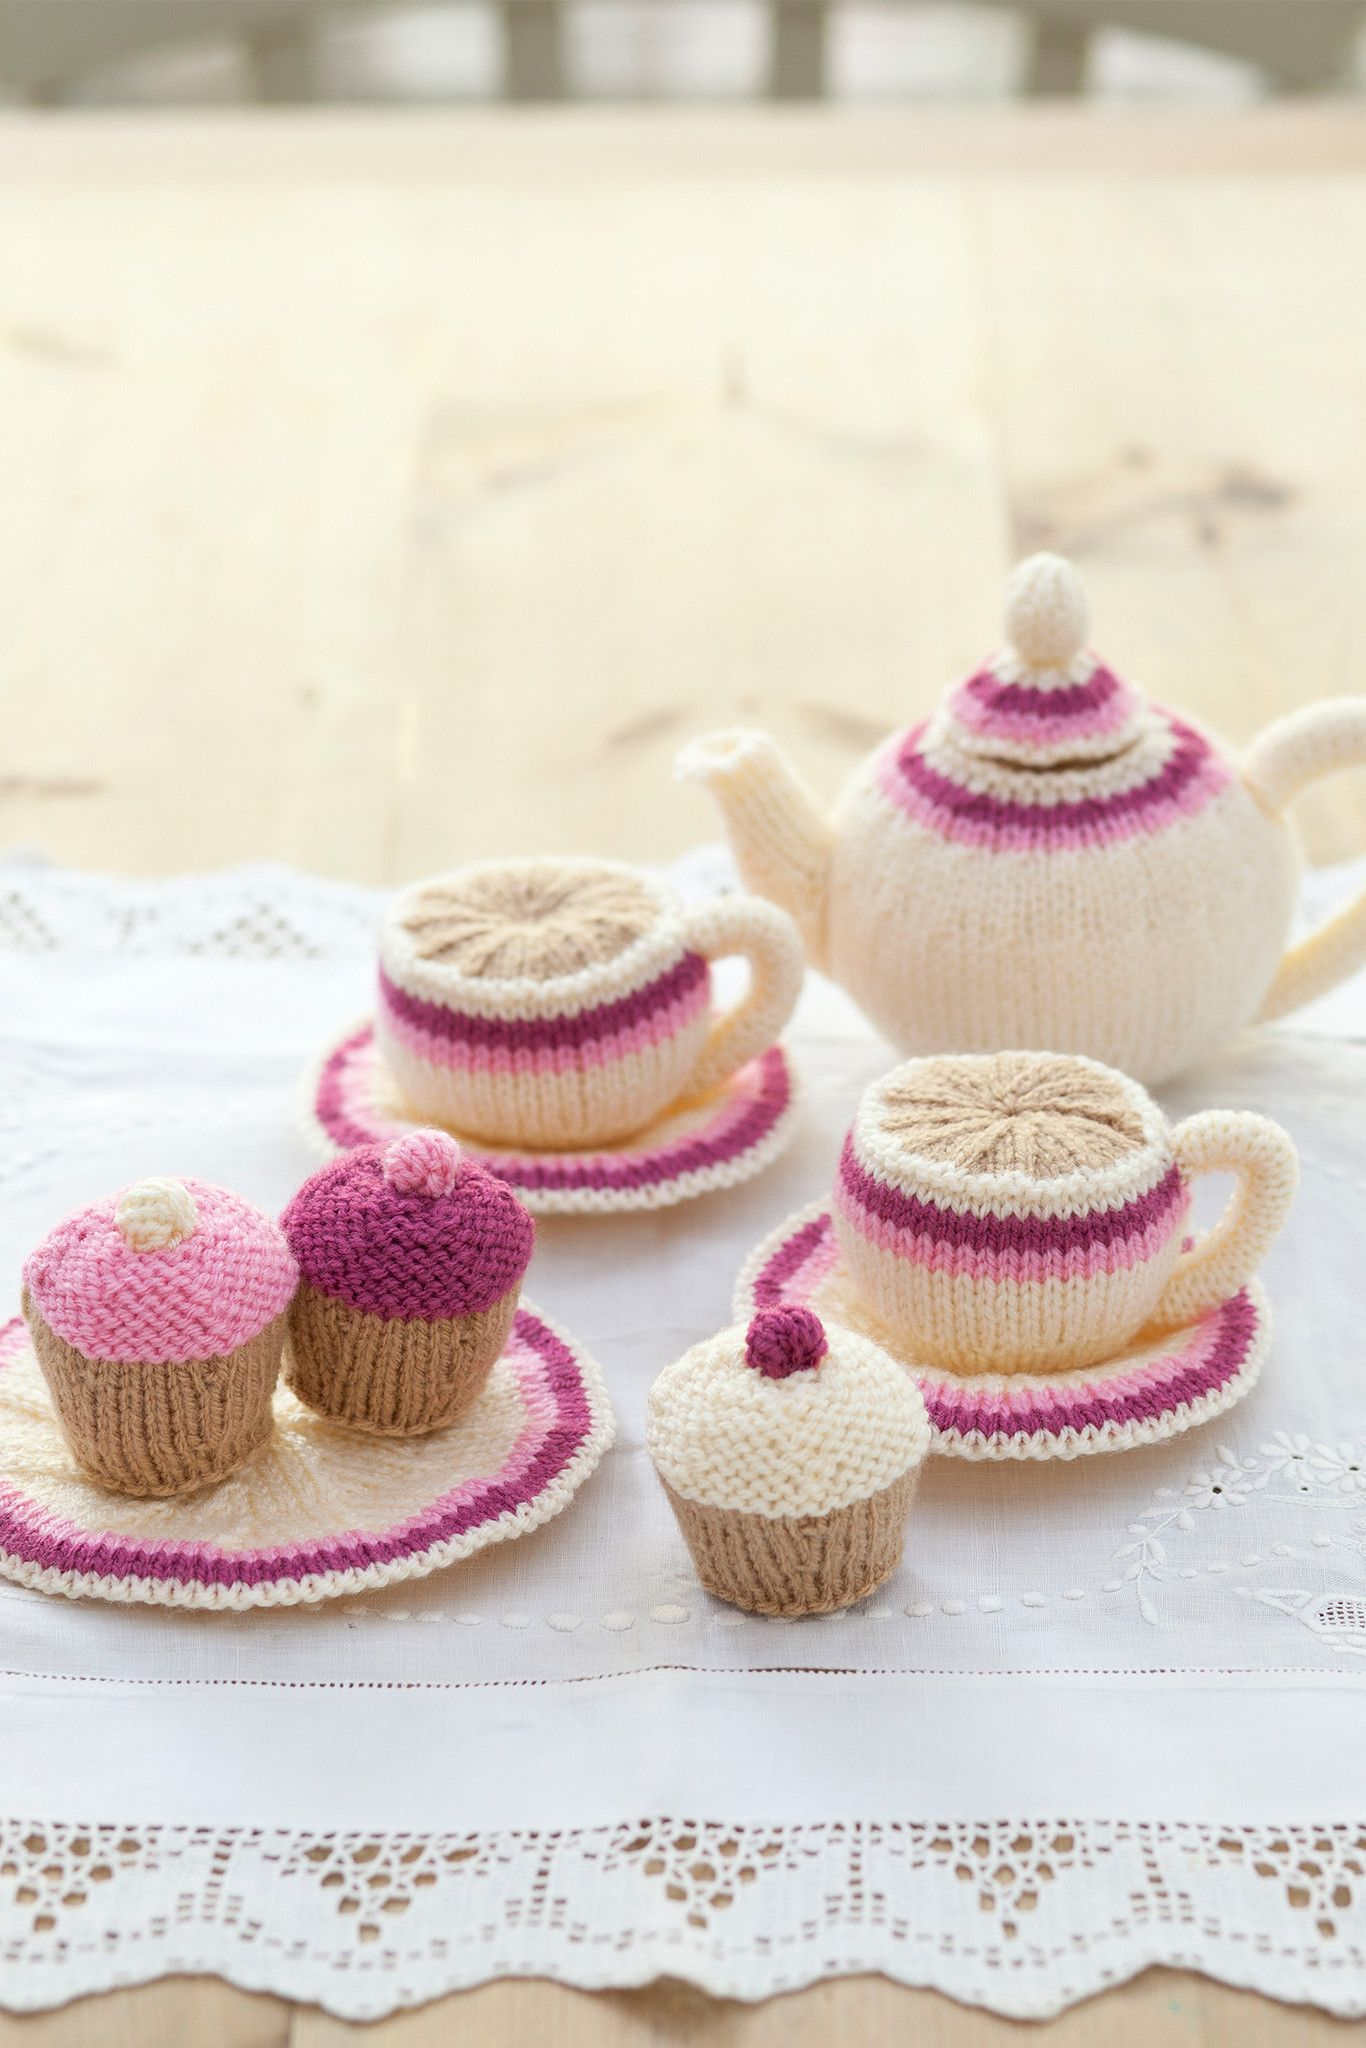 Afternoon Tea Set Knitting Patterns | Pinterest | Knit patterns ...